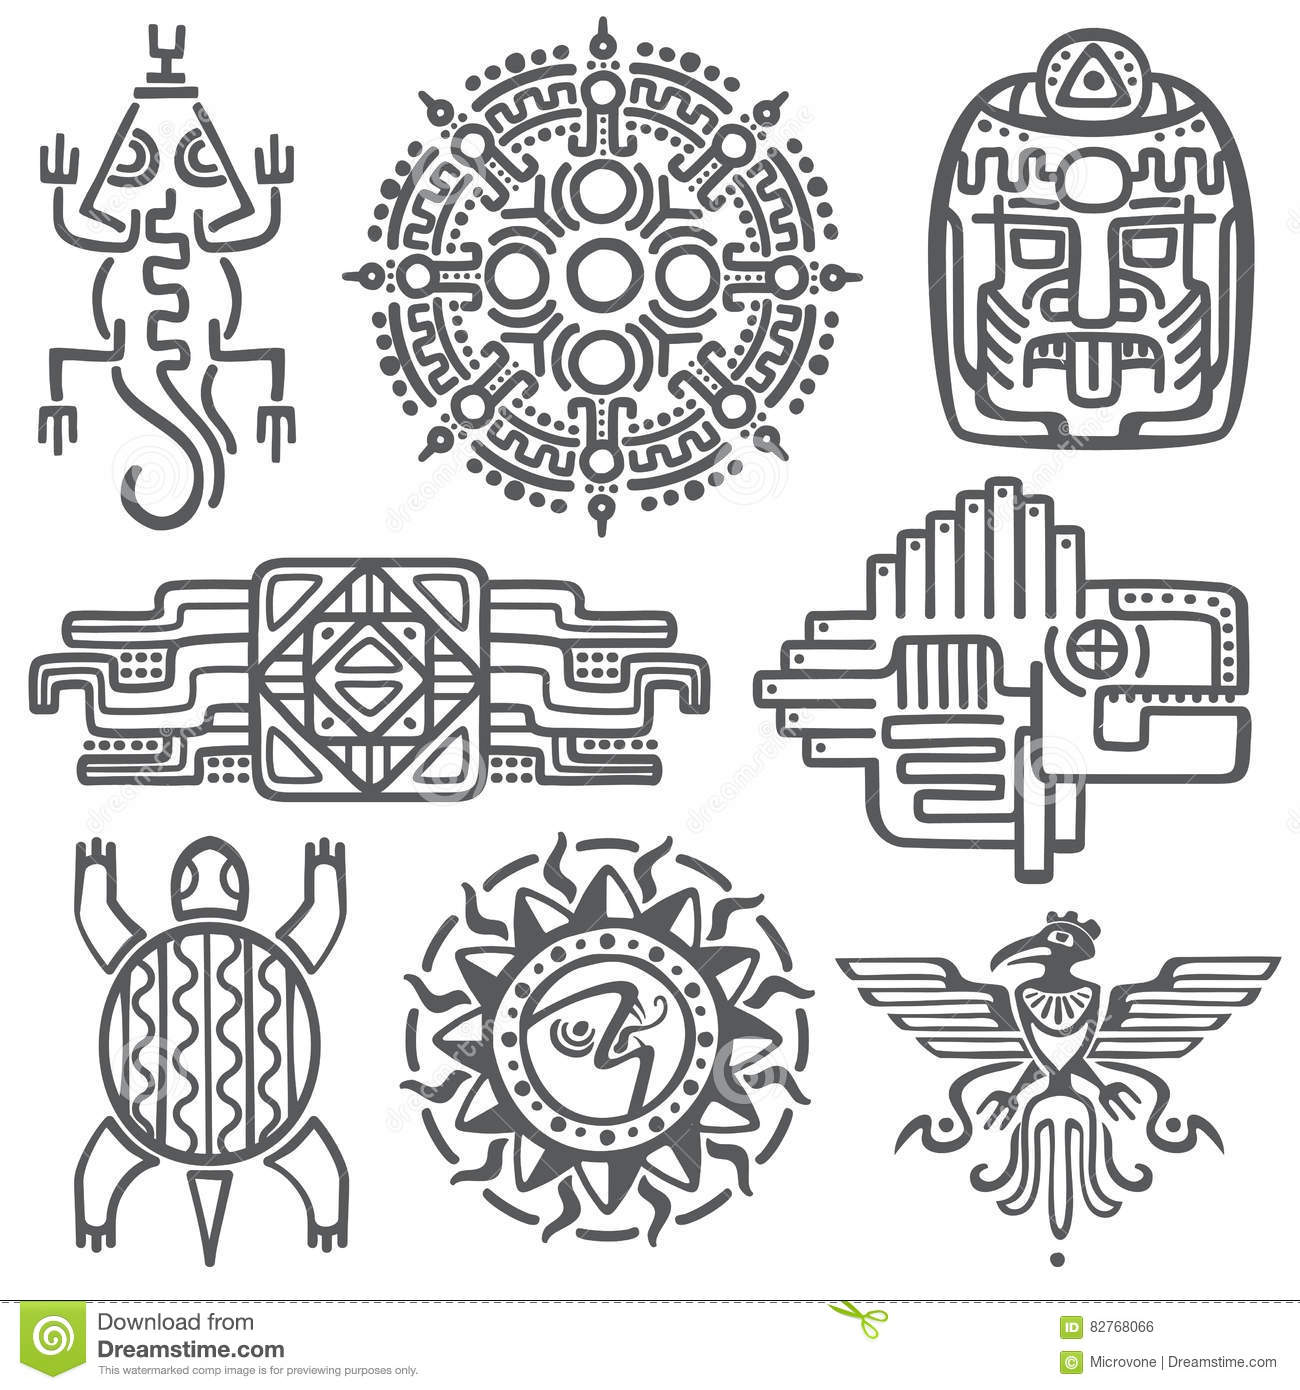 Culture stock illustrations 415267 culture stock illustrations ancient mexican vector mythology symbols american aztec mayan culture native totem patterns aztec buycottarizona Image collections